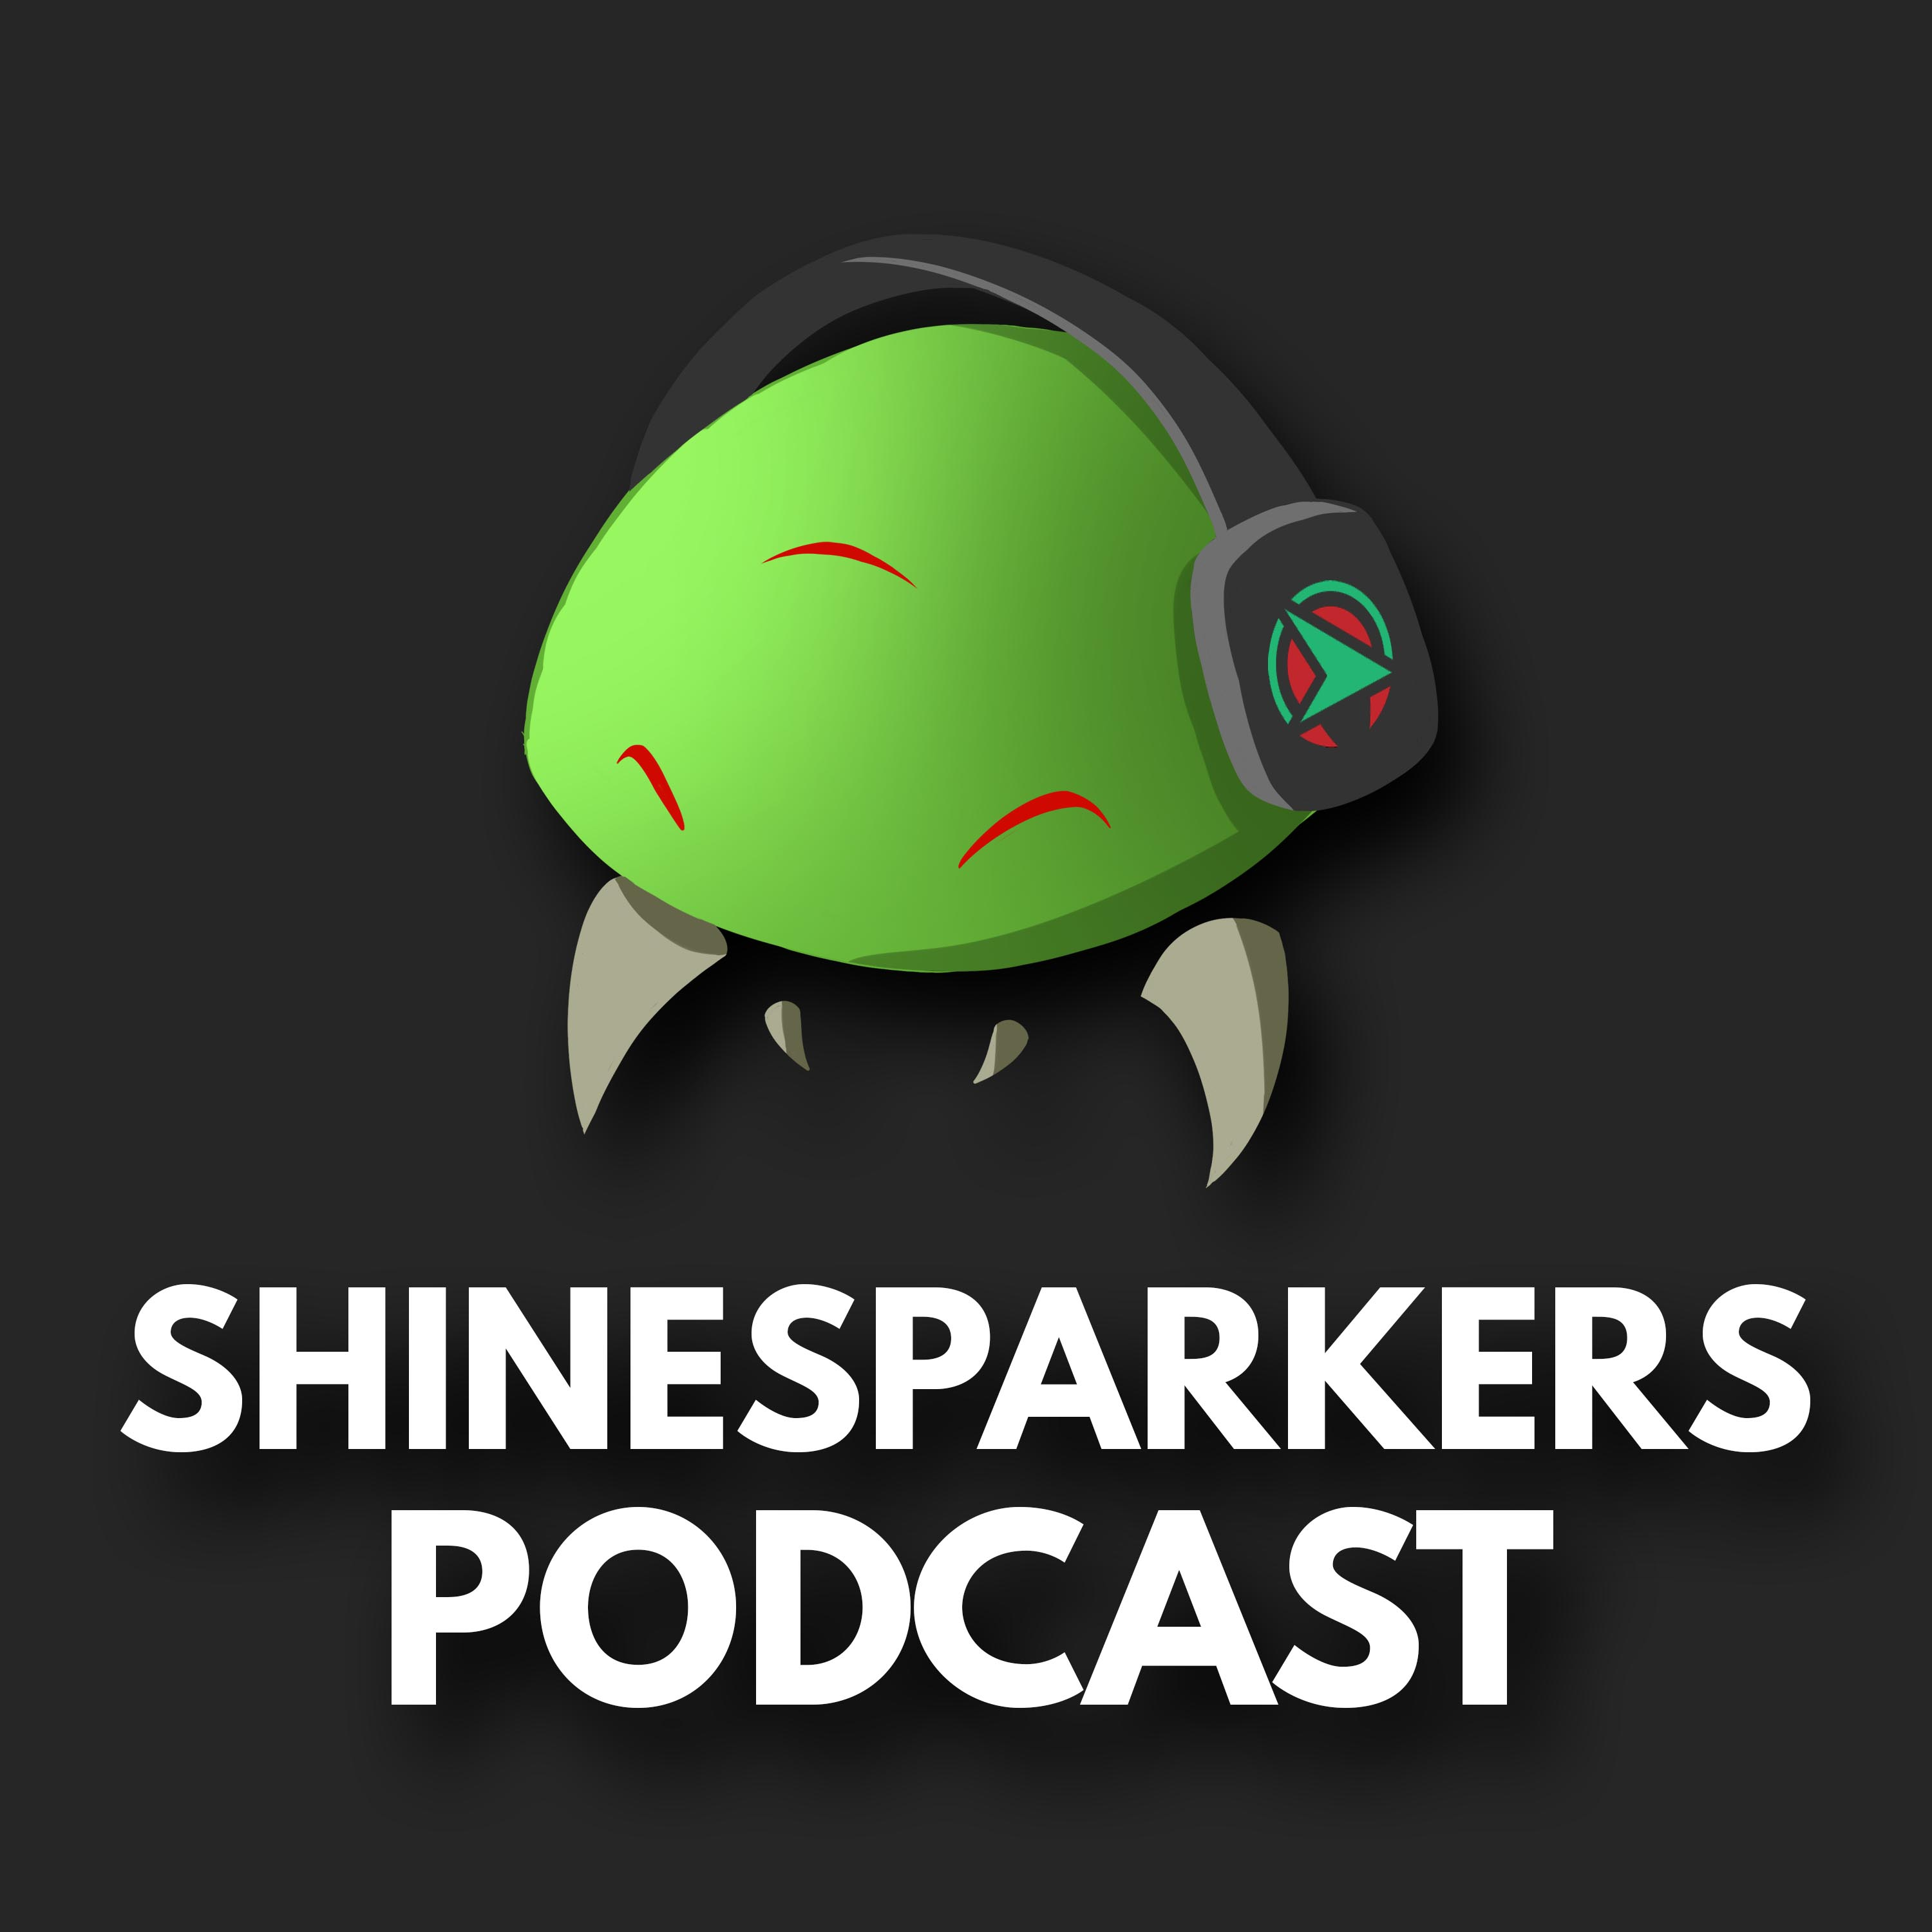 Shinesparkers Podcast